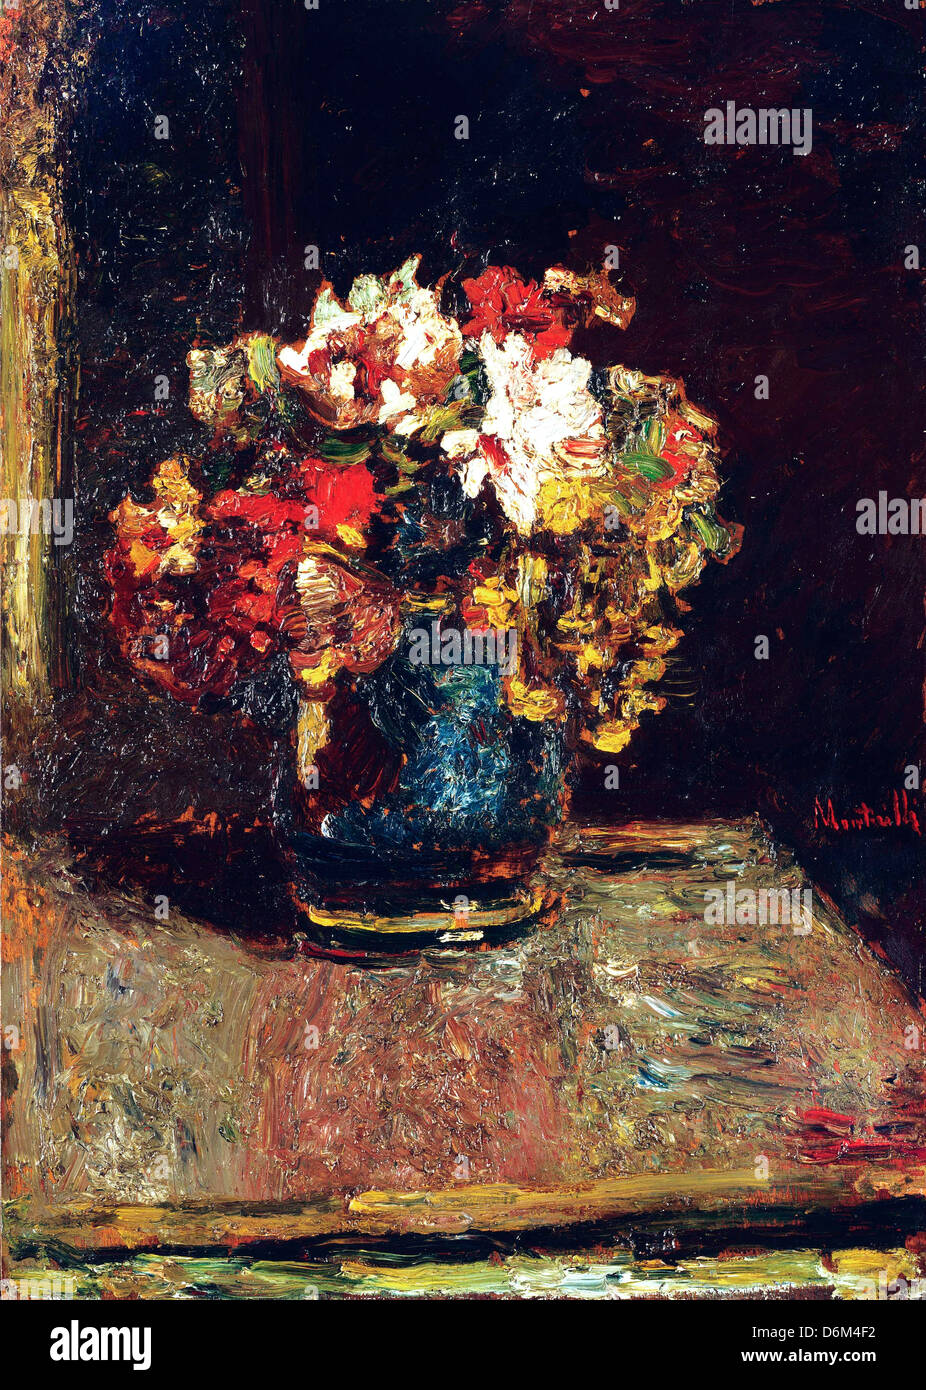 Adolphe Monticelli, Bouquet. Circa 1875 Oil on wood panel. Phillips Collection, Washington, D.C., USA - Stock Image